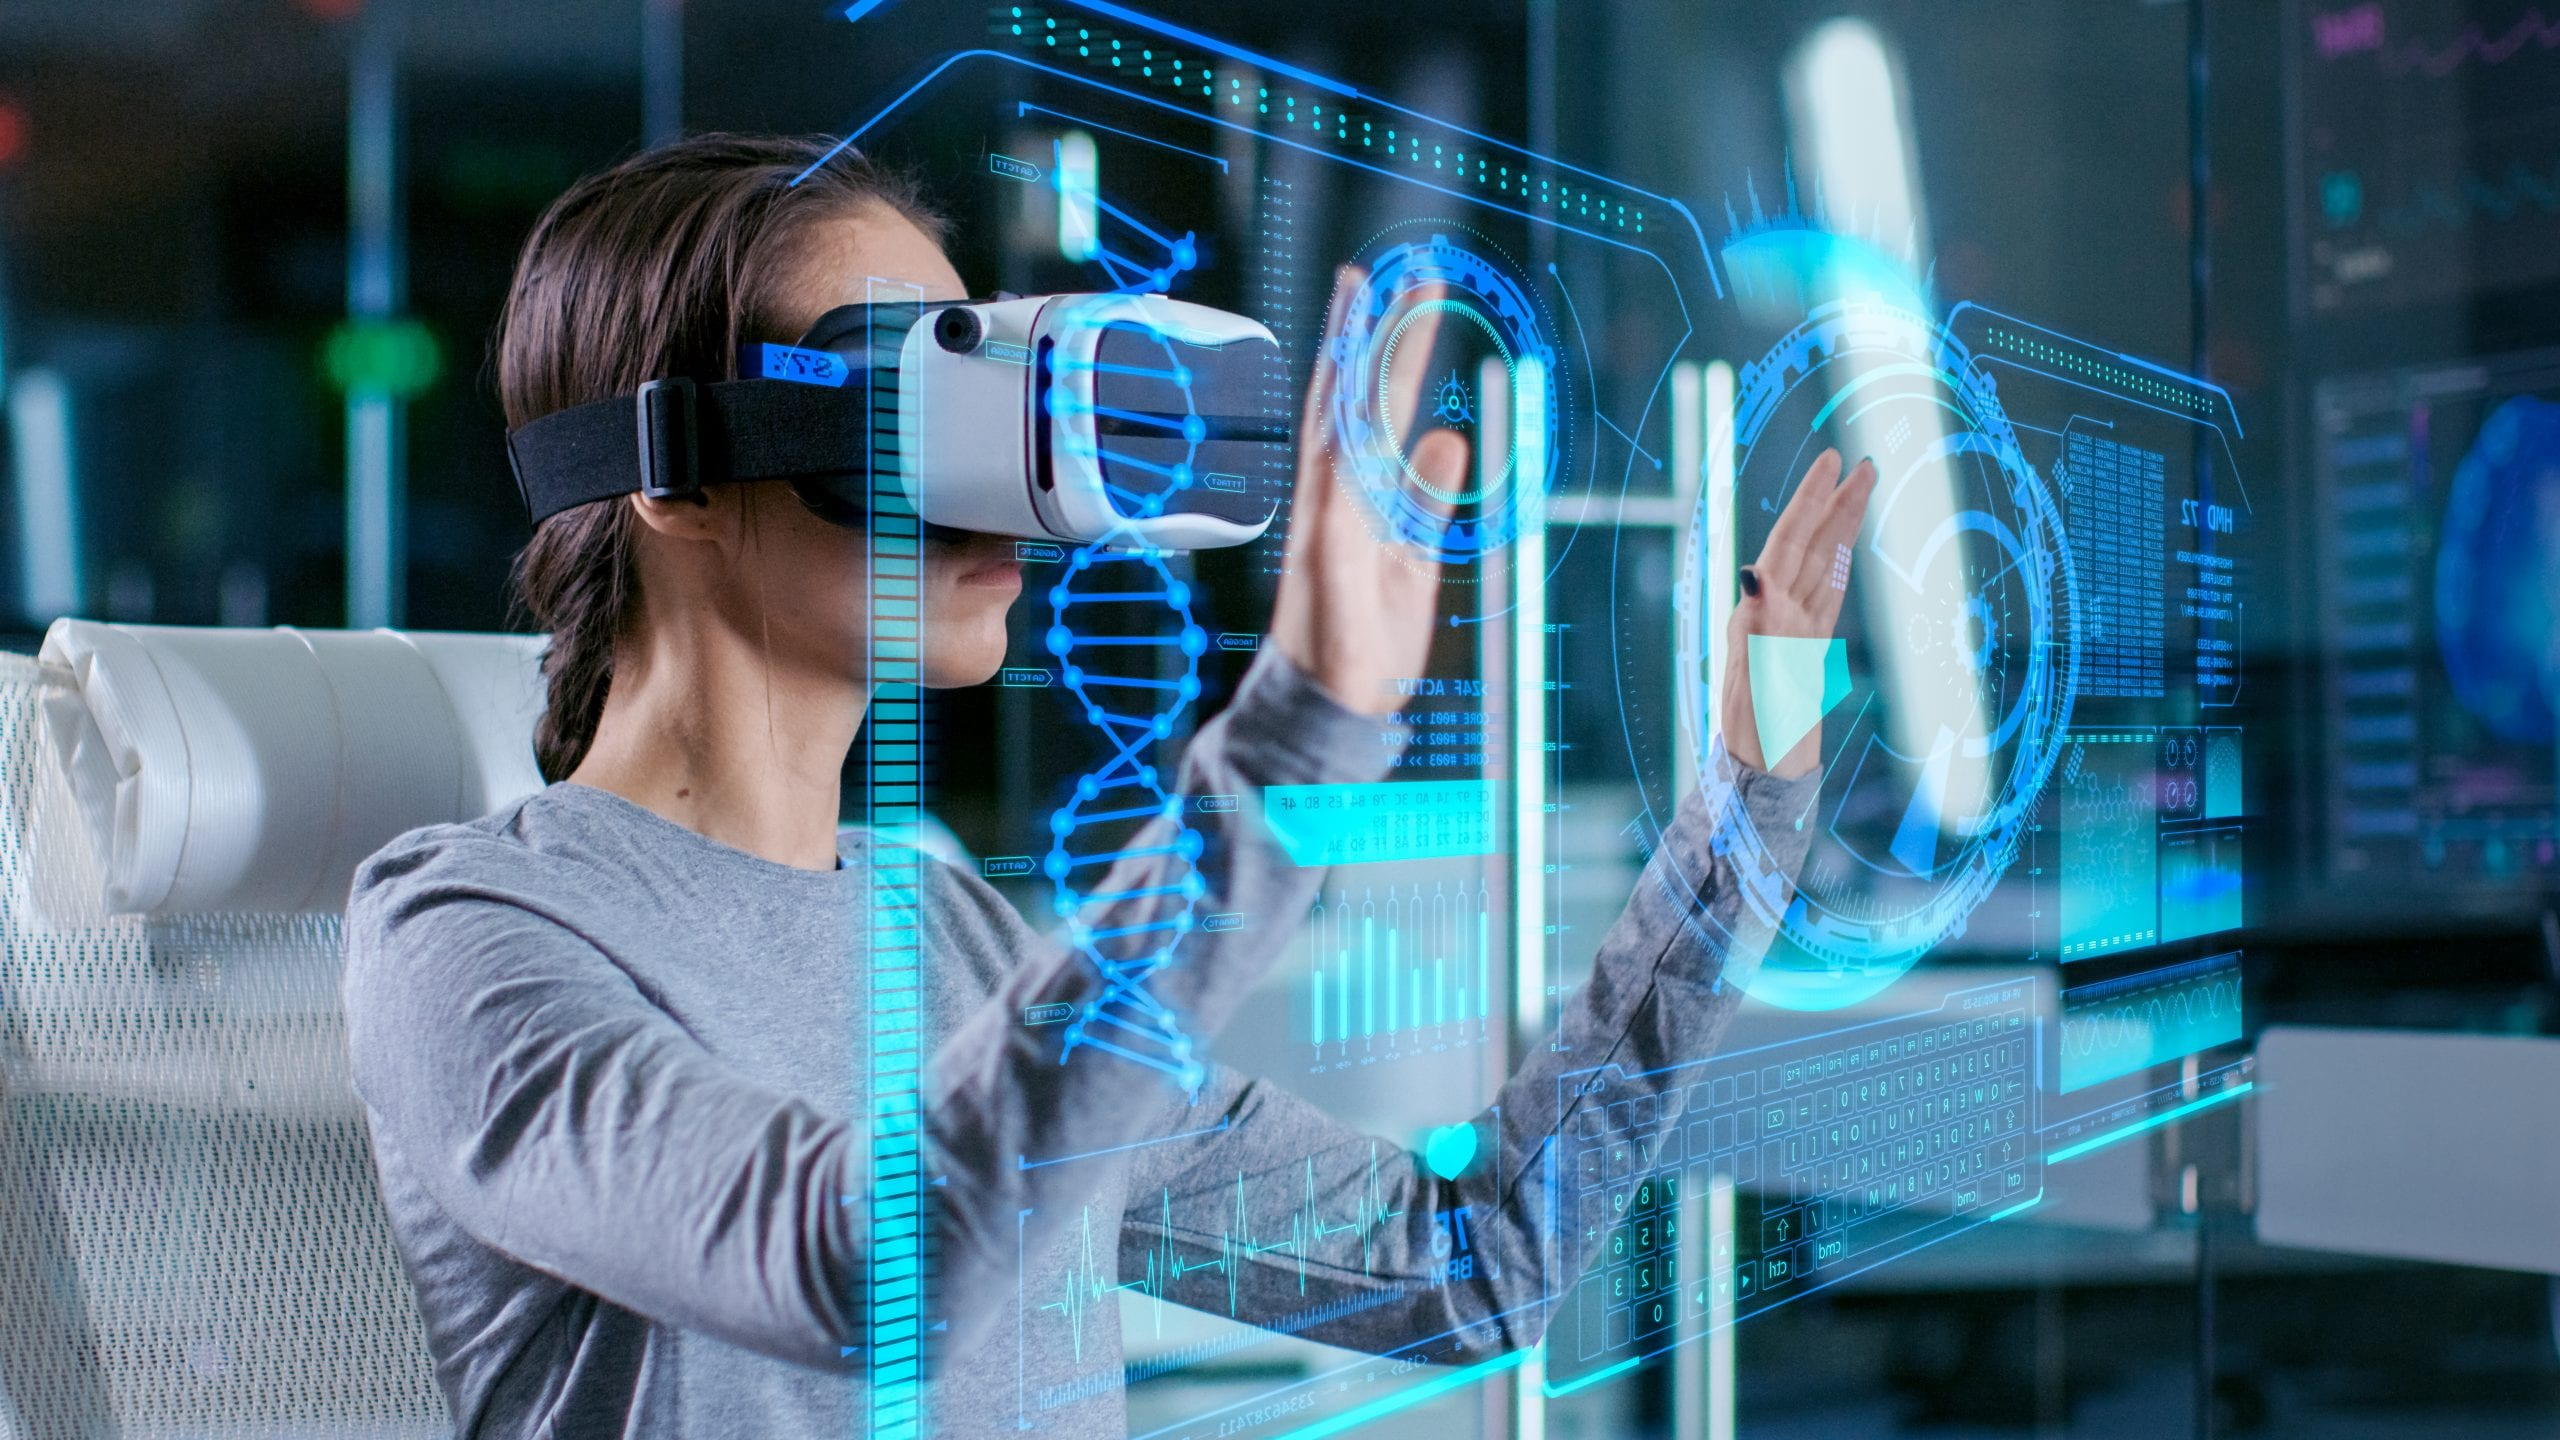 Virtual and augmented reality as cognitive tools for learning